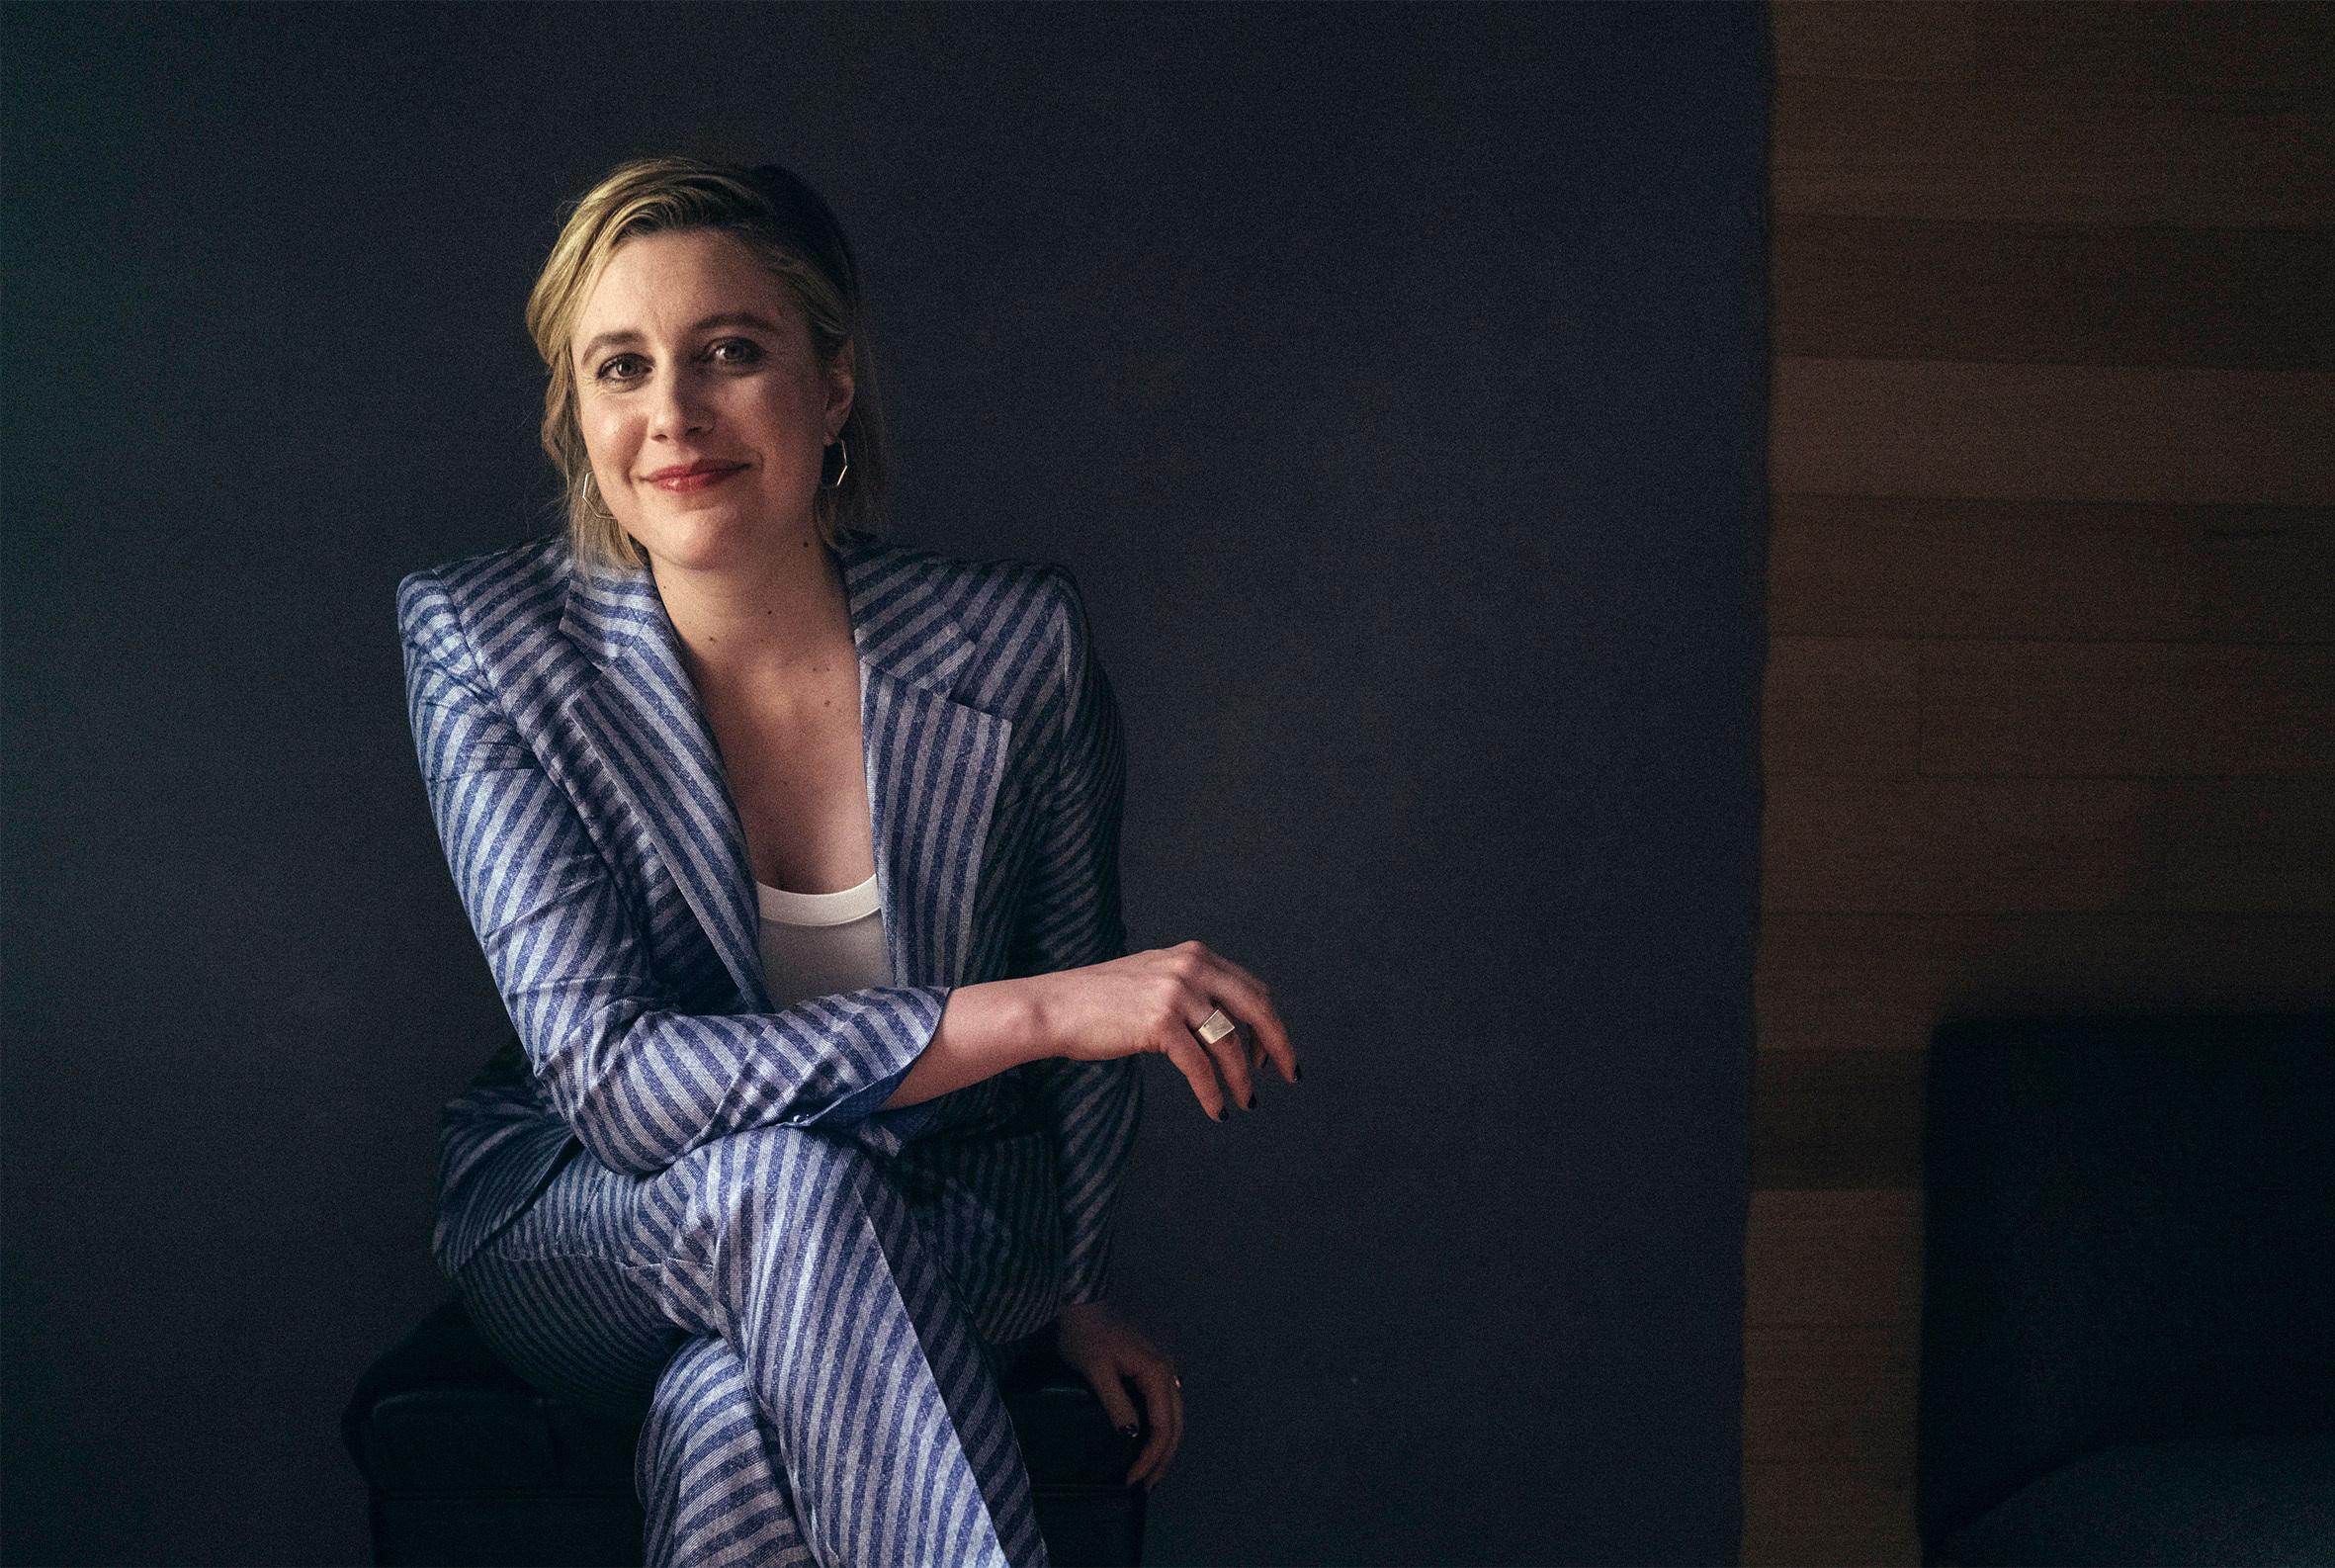 Why Greta Gerwig is still great (despite the Oscars snub)